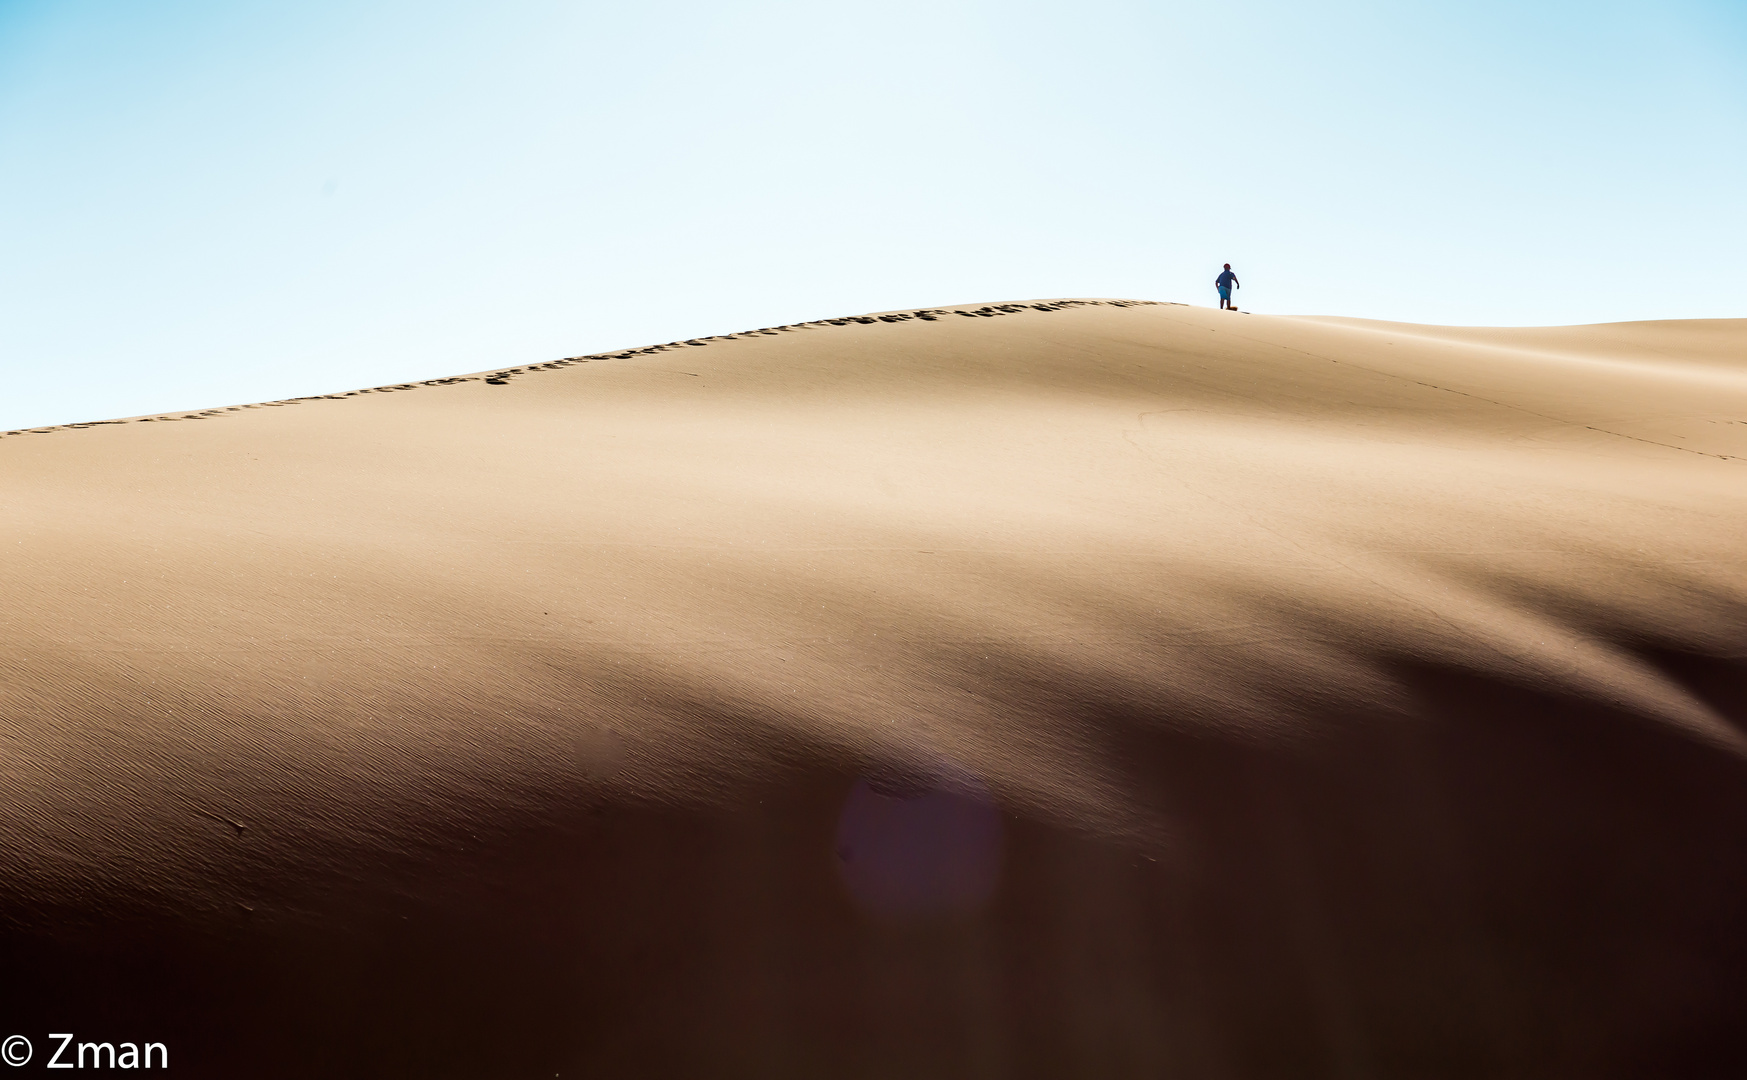 Going Up The Dunes 02